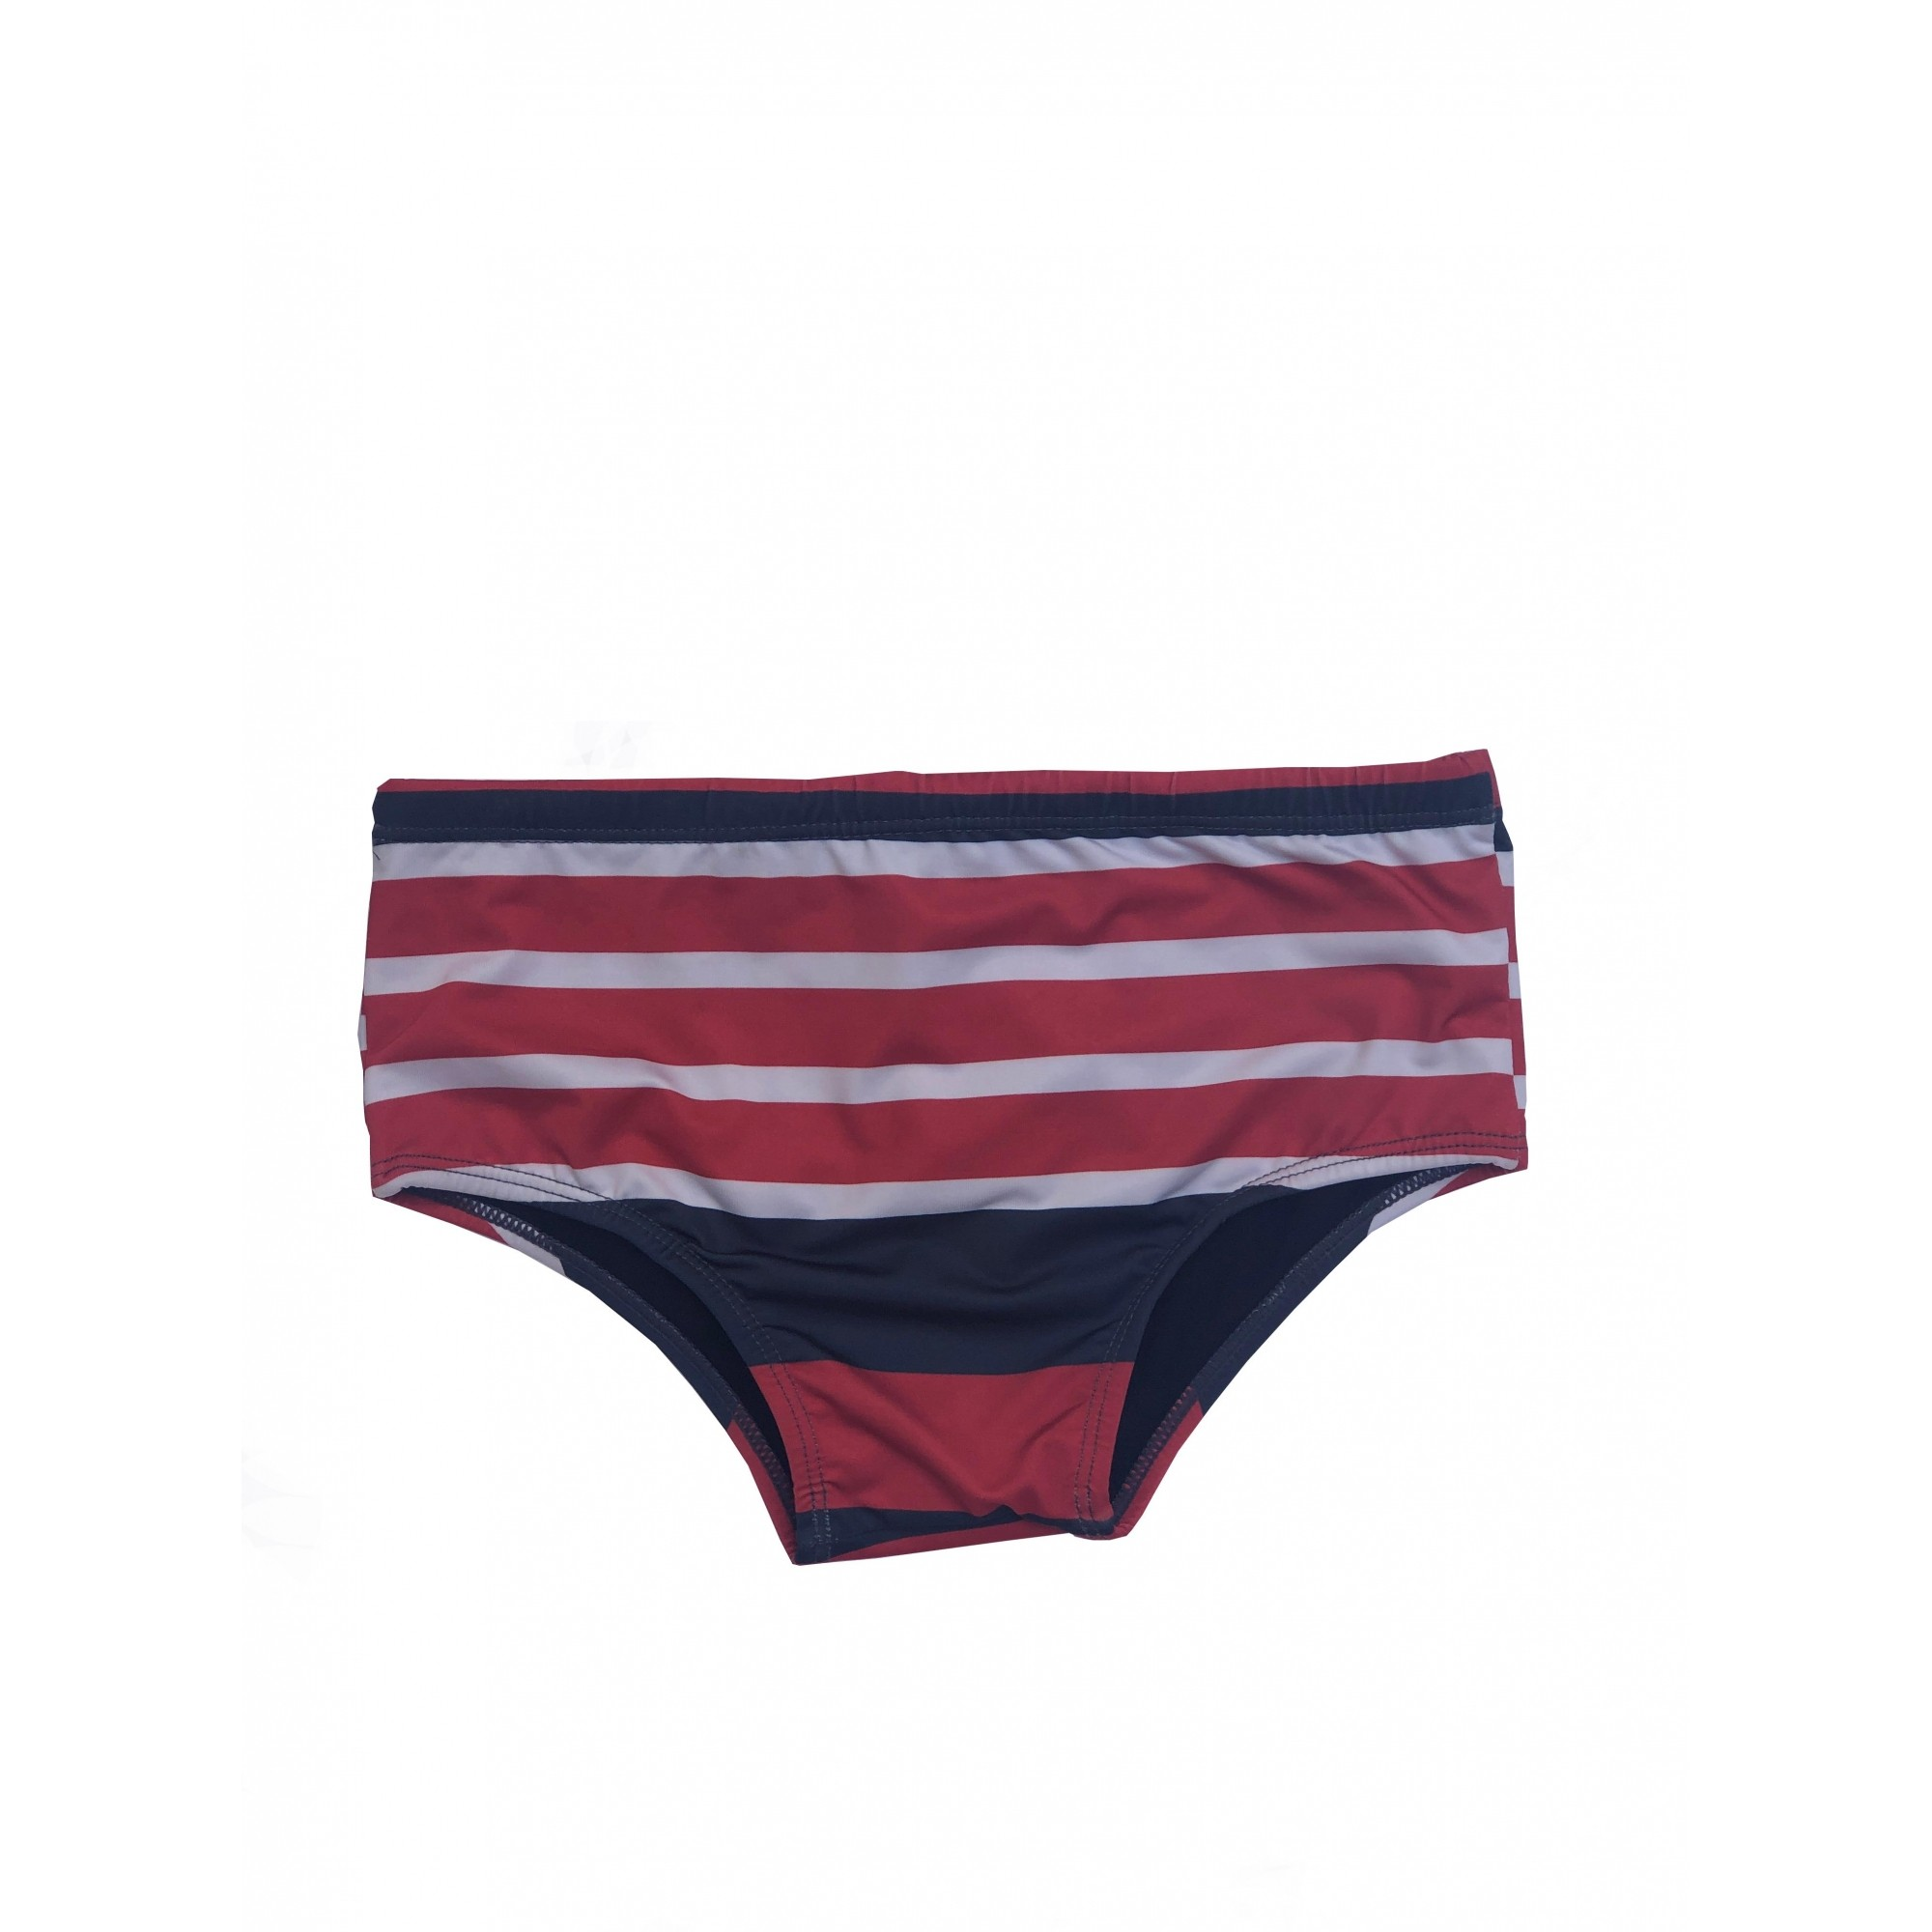 SUNGA LARGA RED STRIPES